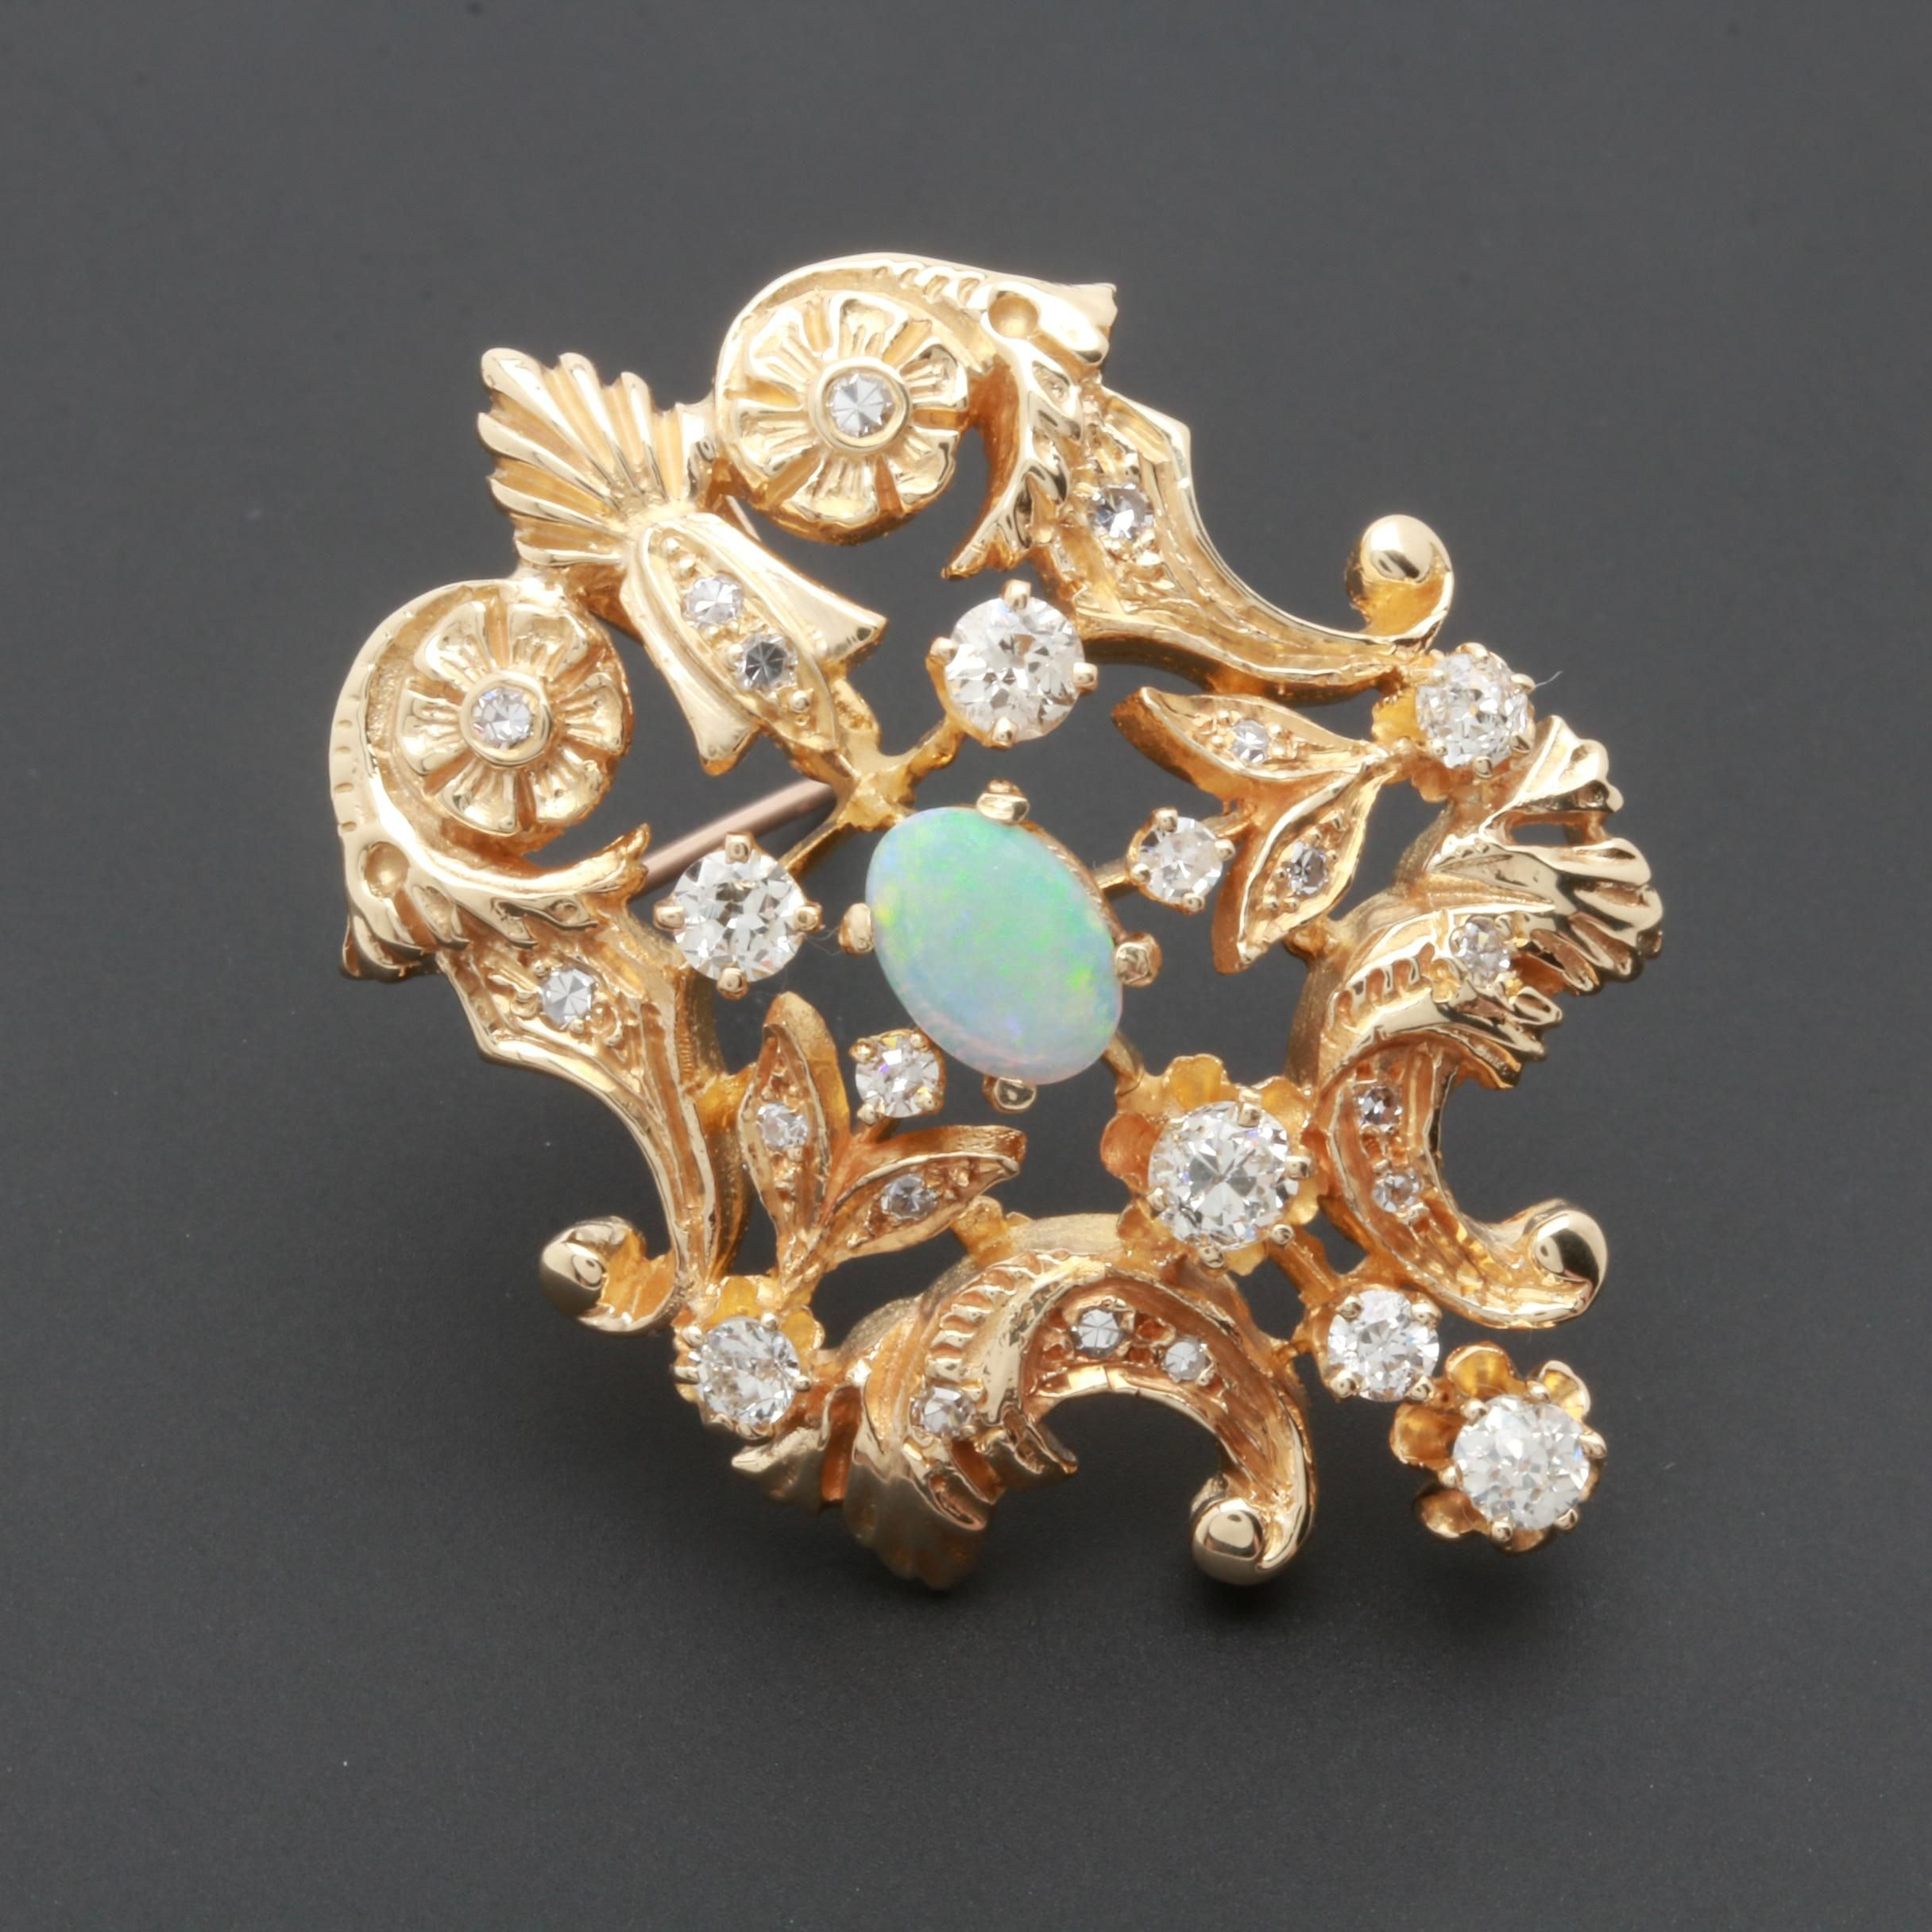 Vintage 14K Yellow Gold Opal and Diamond Converter Brooch